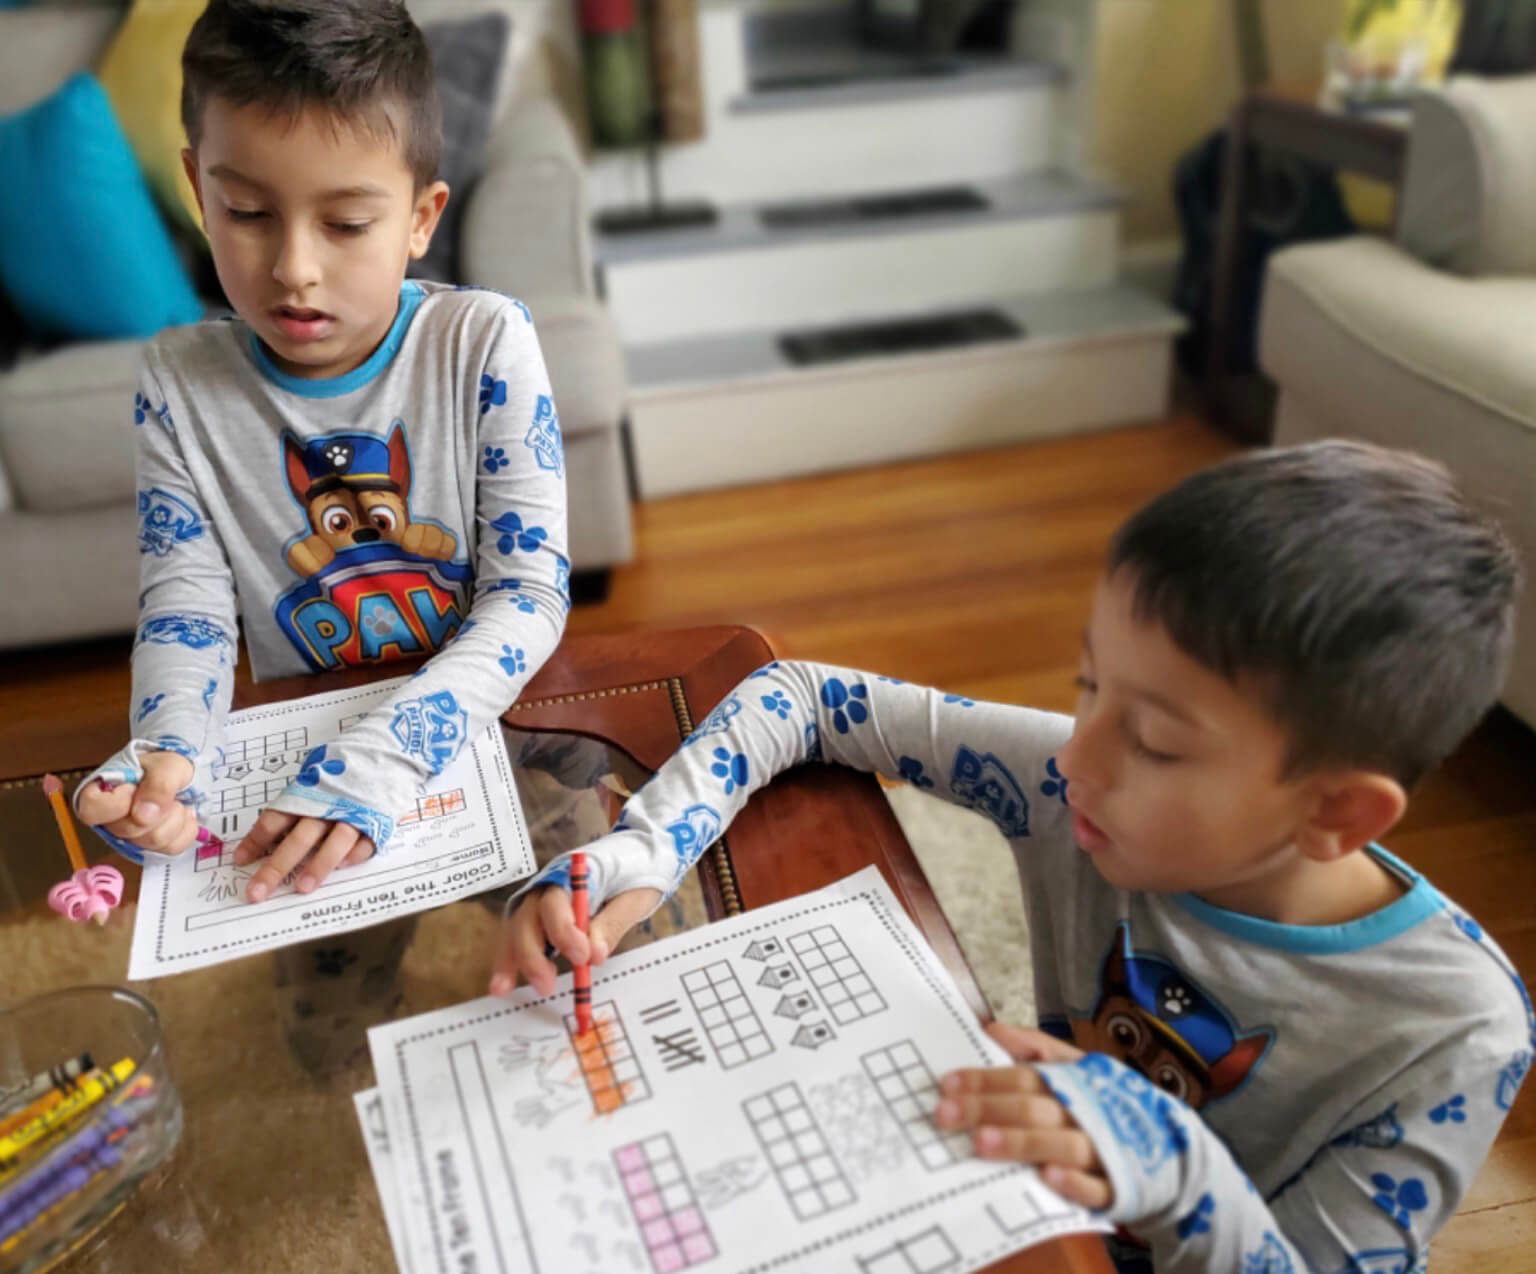 boys in pajamas doing schoolwork at home